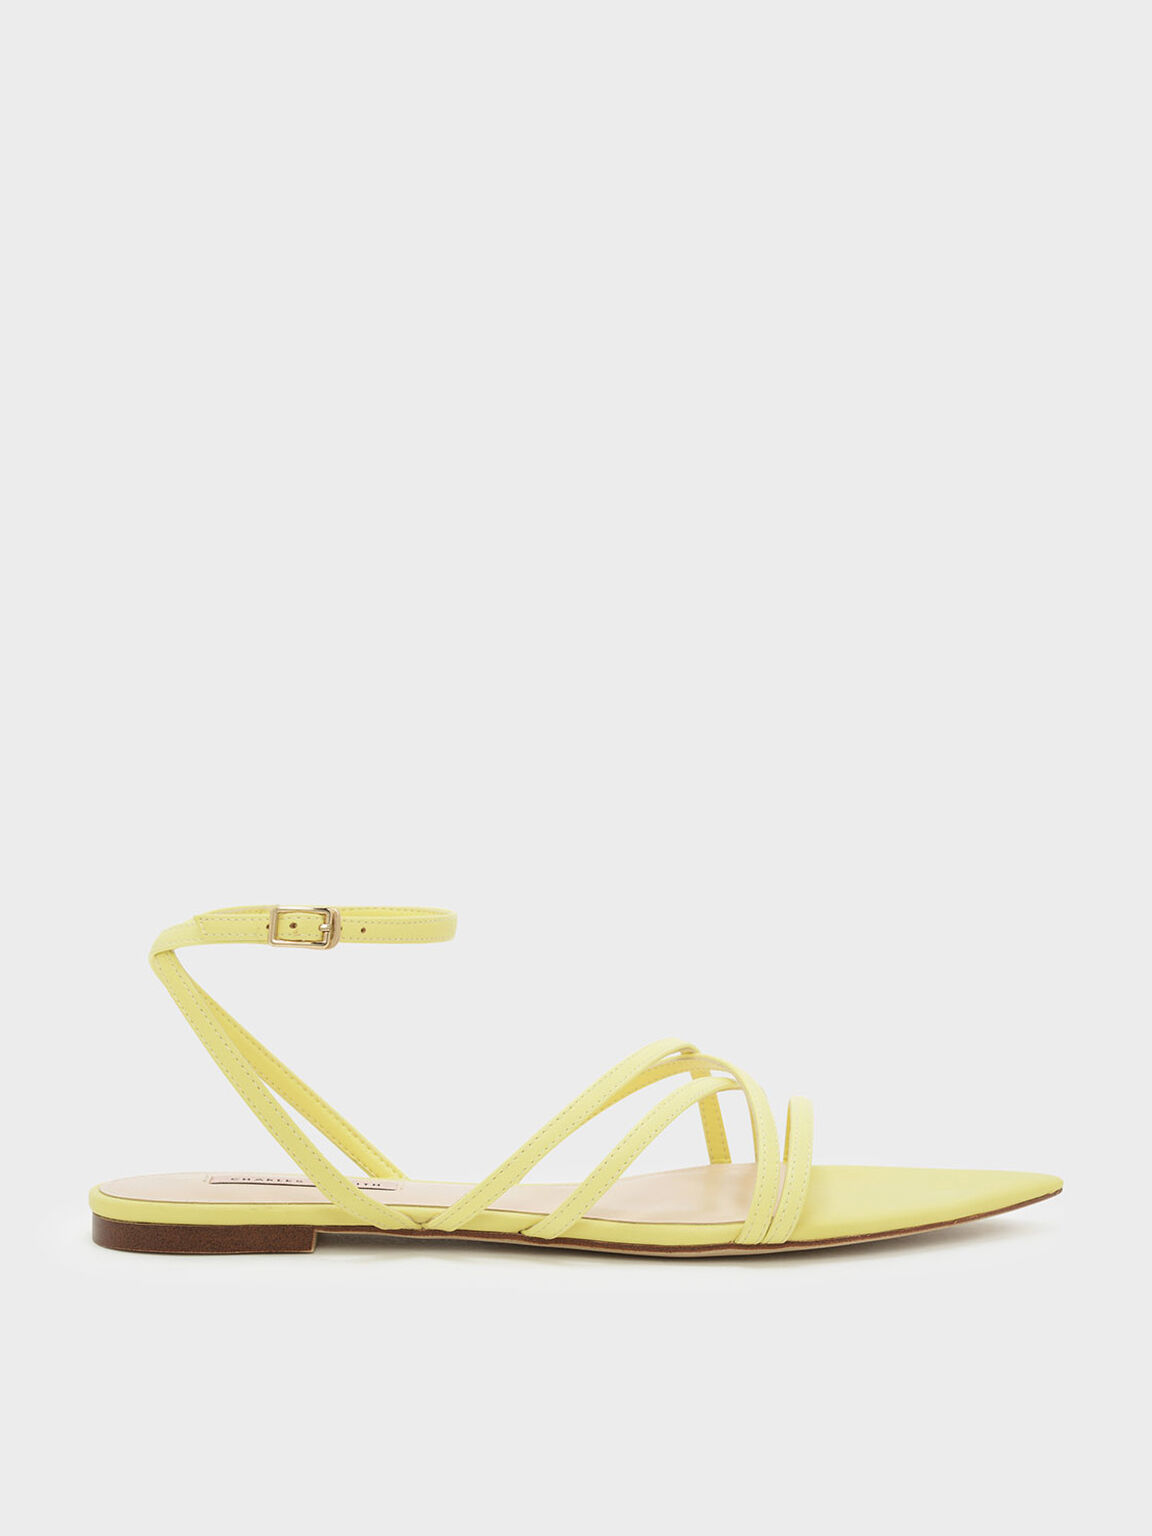 Strappy Pointed Sandals, Yellow, hi-res